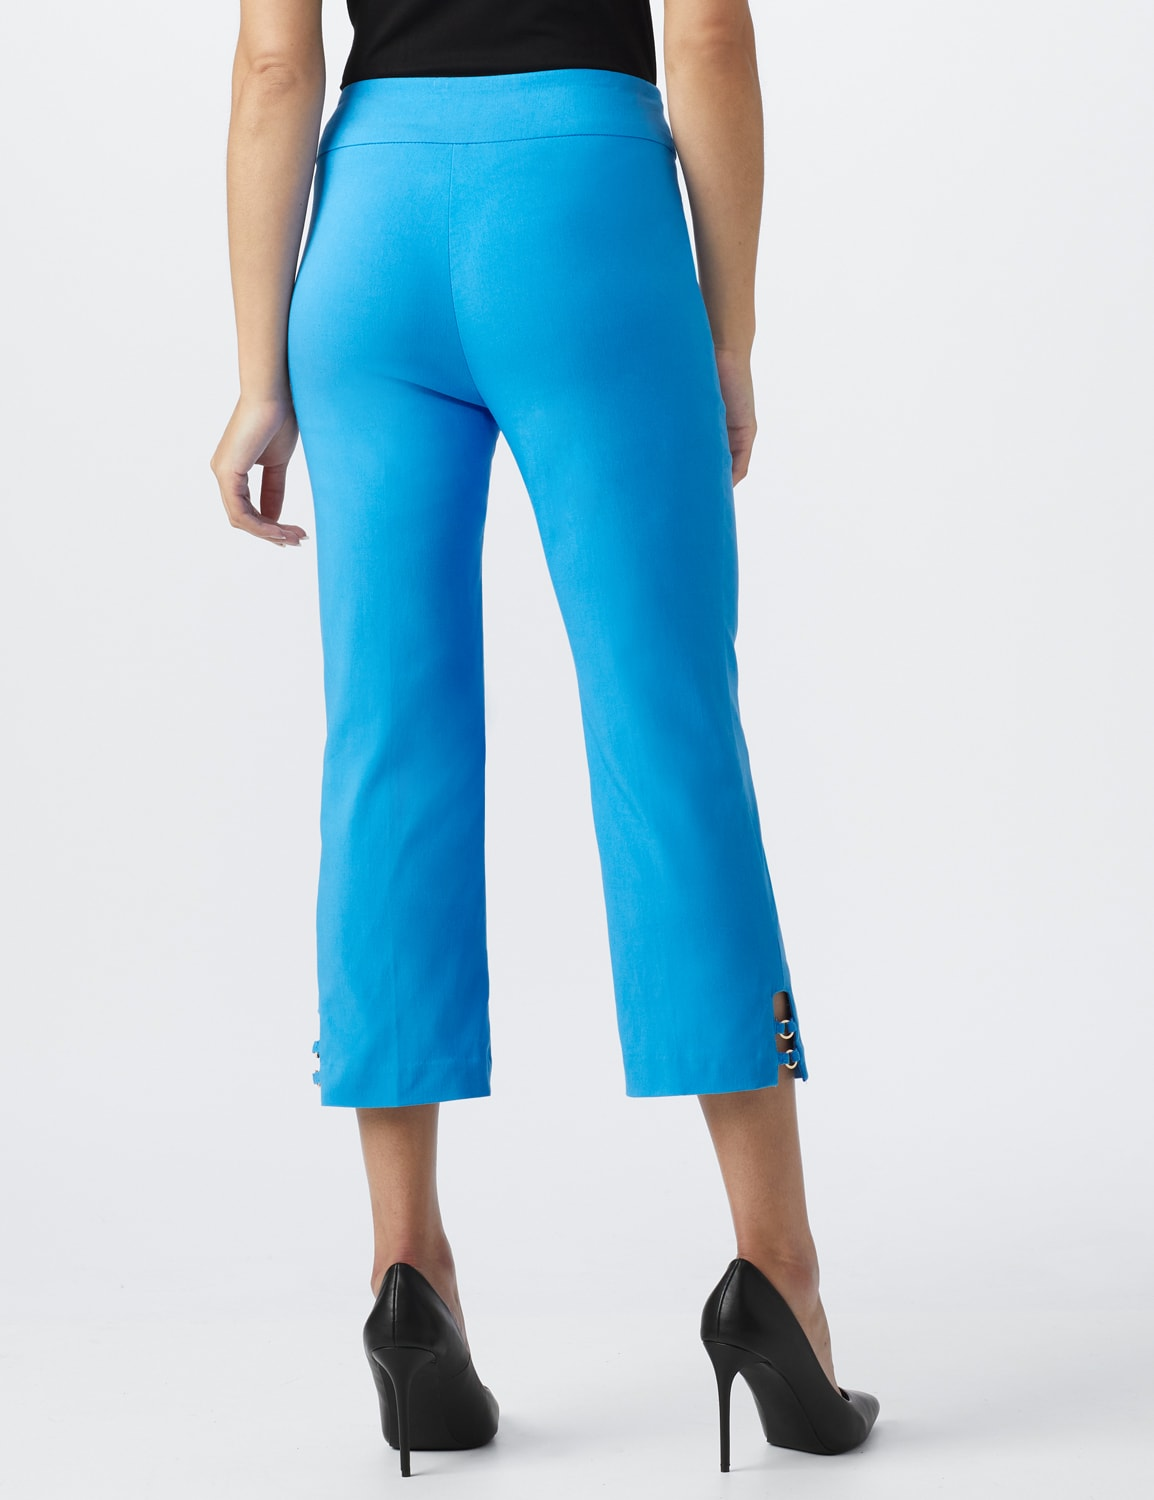 Superstretch Pull On Capri Pant With Tabs And Grommet Trim Hem Detail - Bluebird - Back